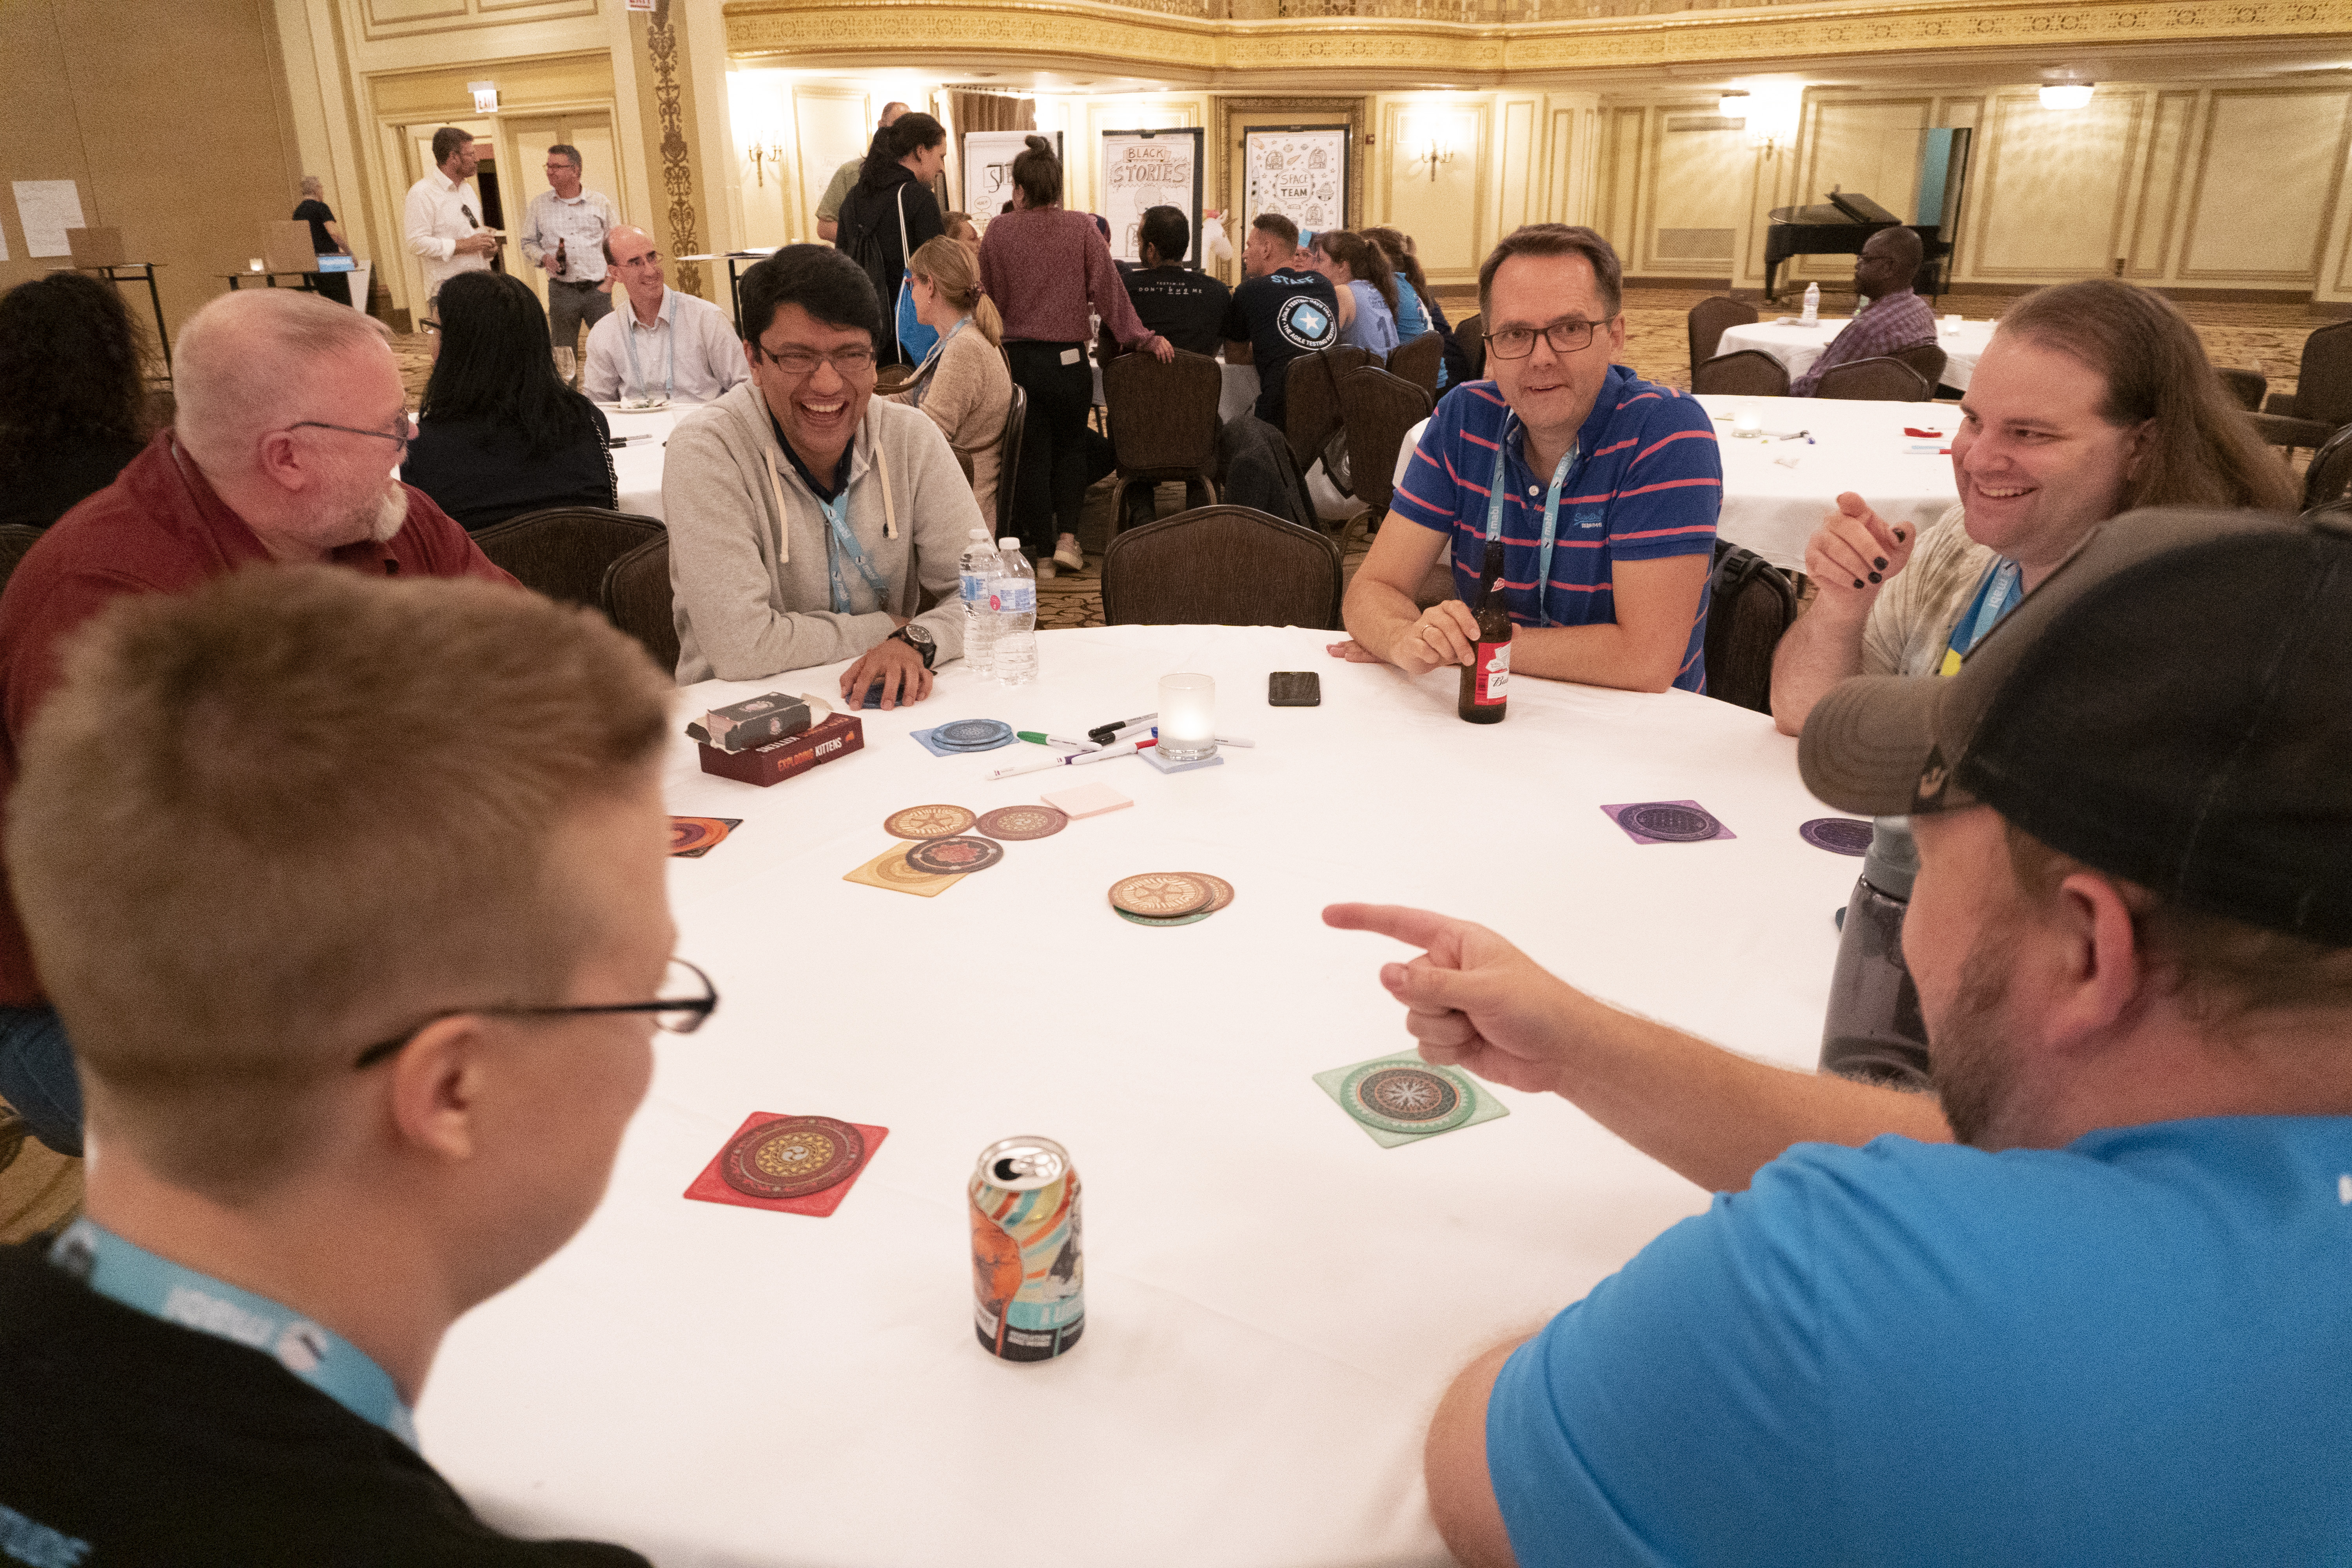 Games, networking and making new friends at the Agile Community Evening at Agile Testing Days USA 2019